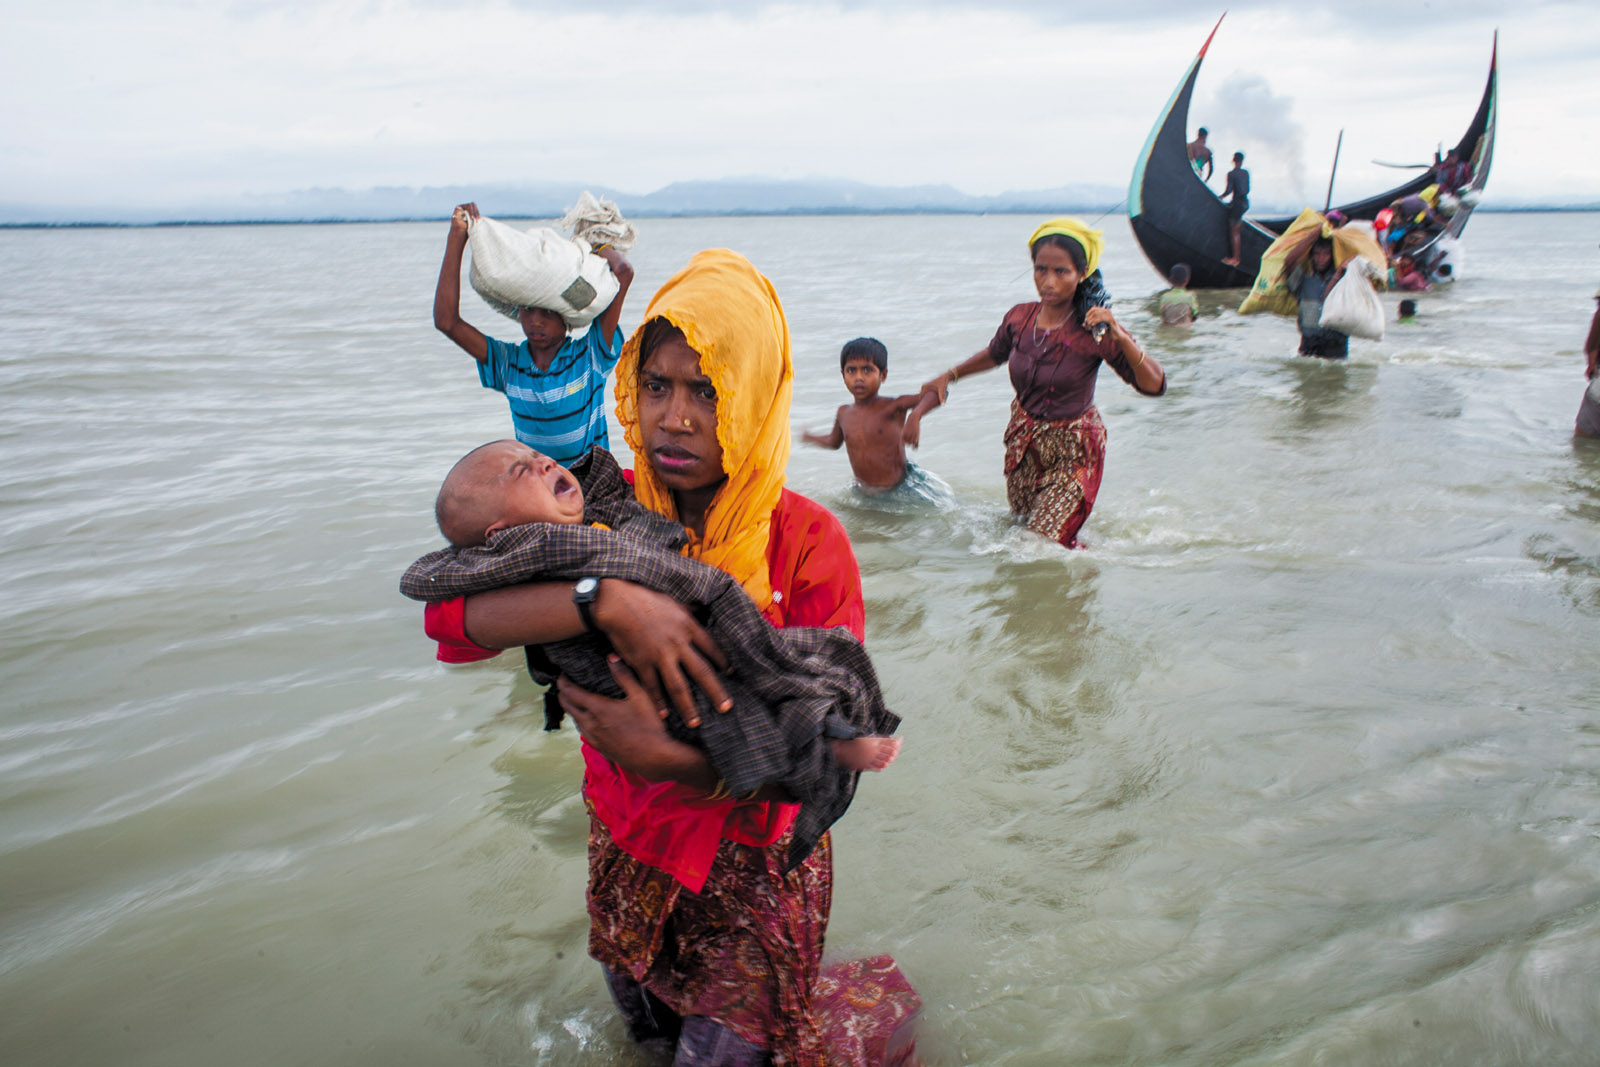 Rohingyas fleeing across the Naf River from Myanmar into Bangladesh, September 2017